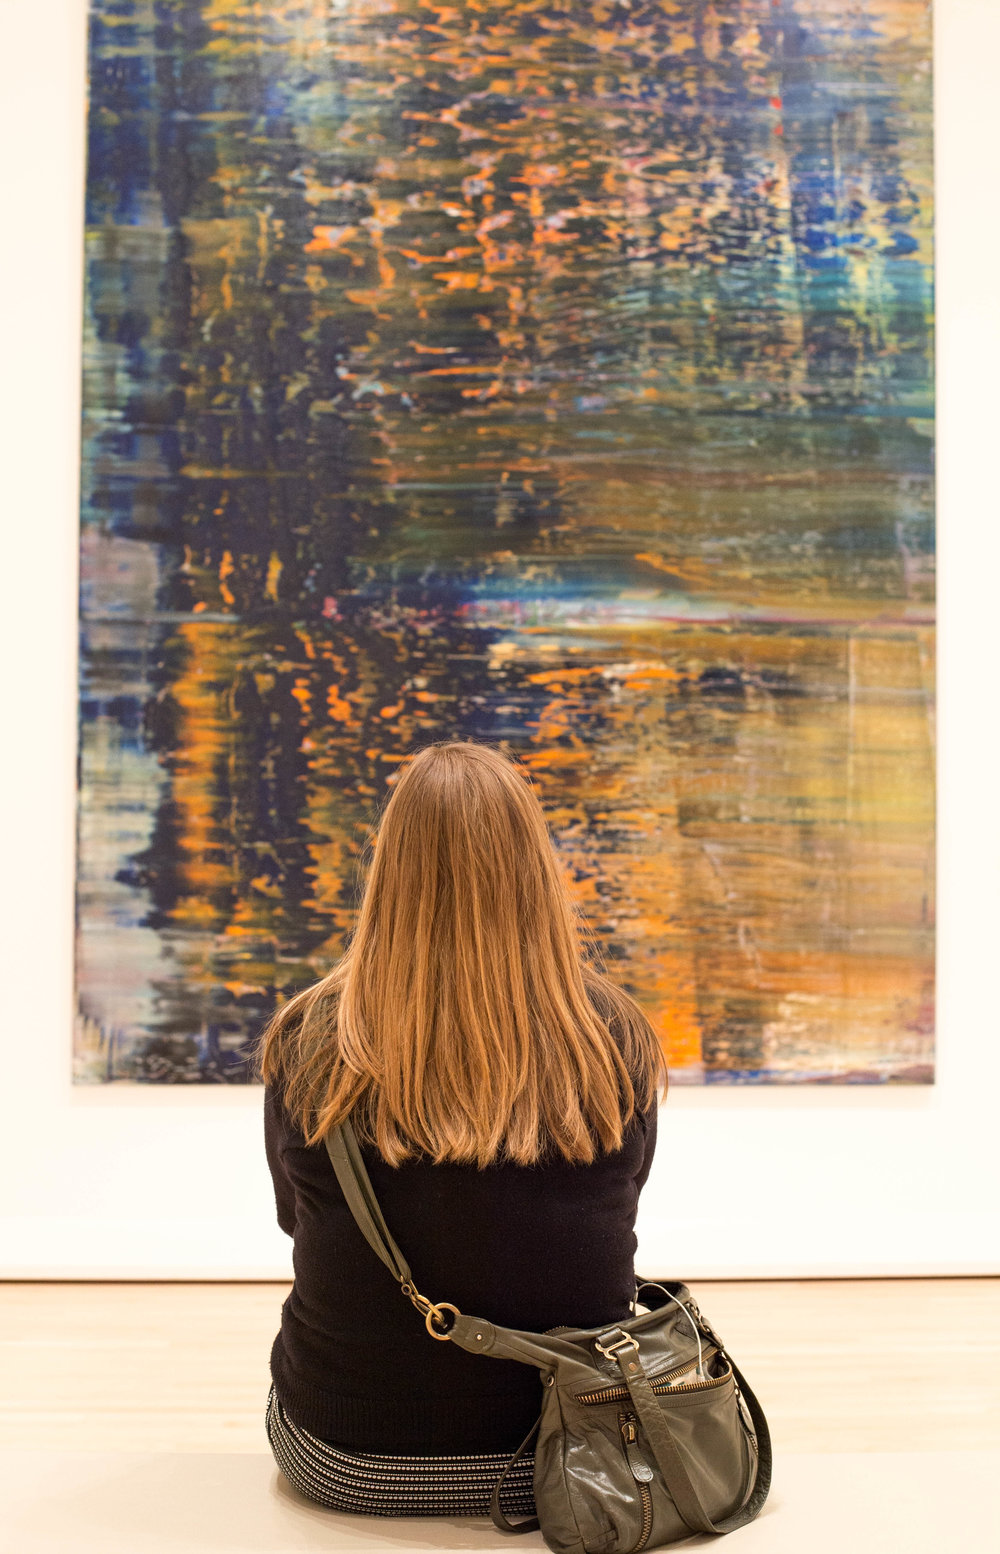 2016-06-03 sf_ca_moma woman back richter V3-4.jpg